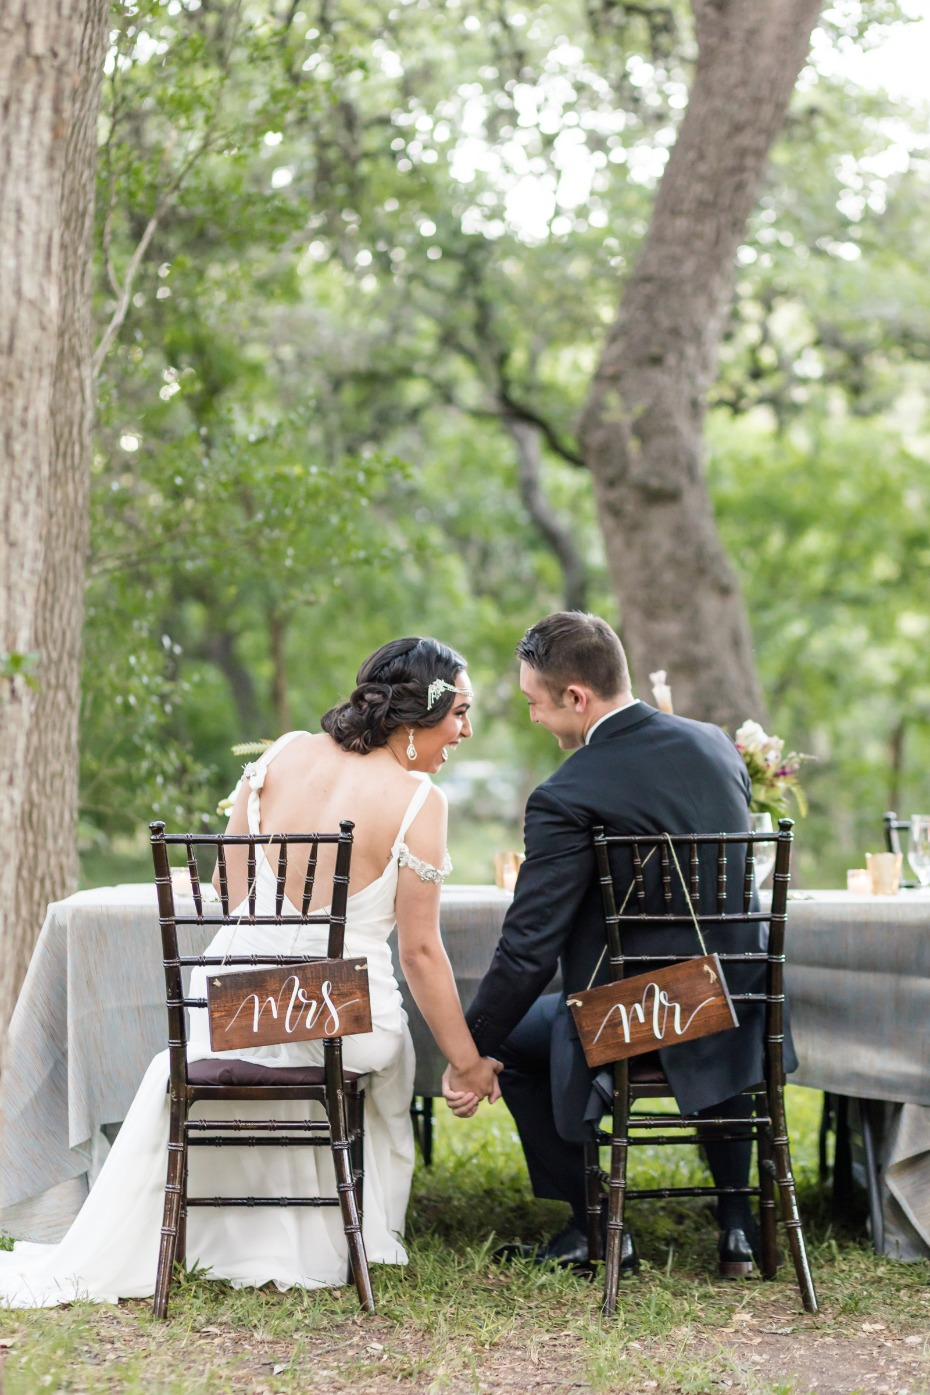 mr and mrs wedding table seat signs